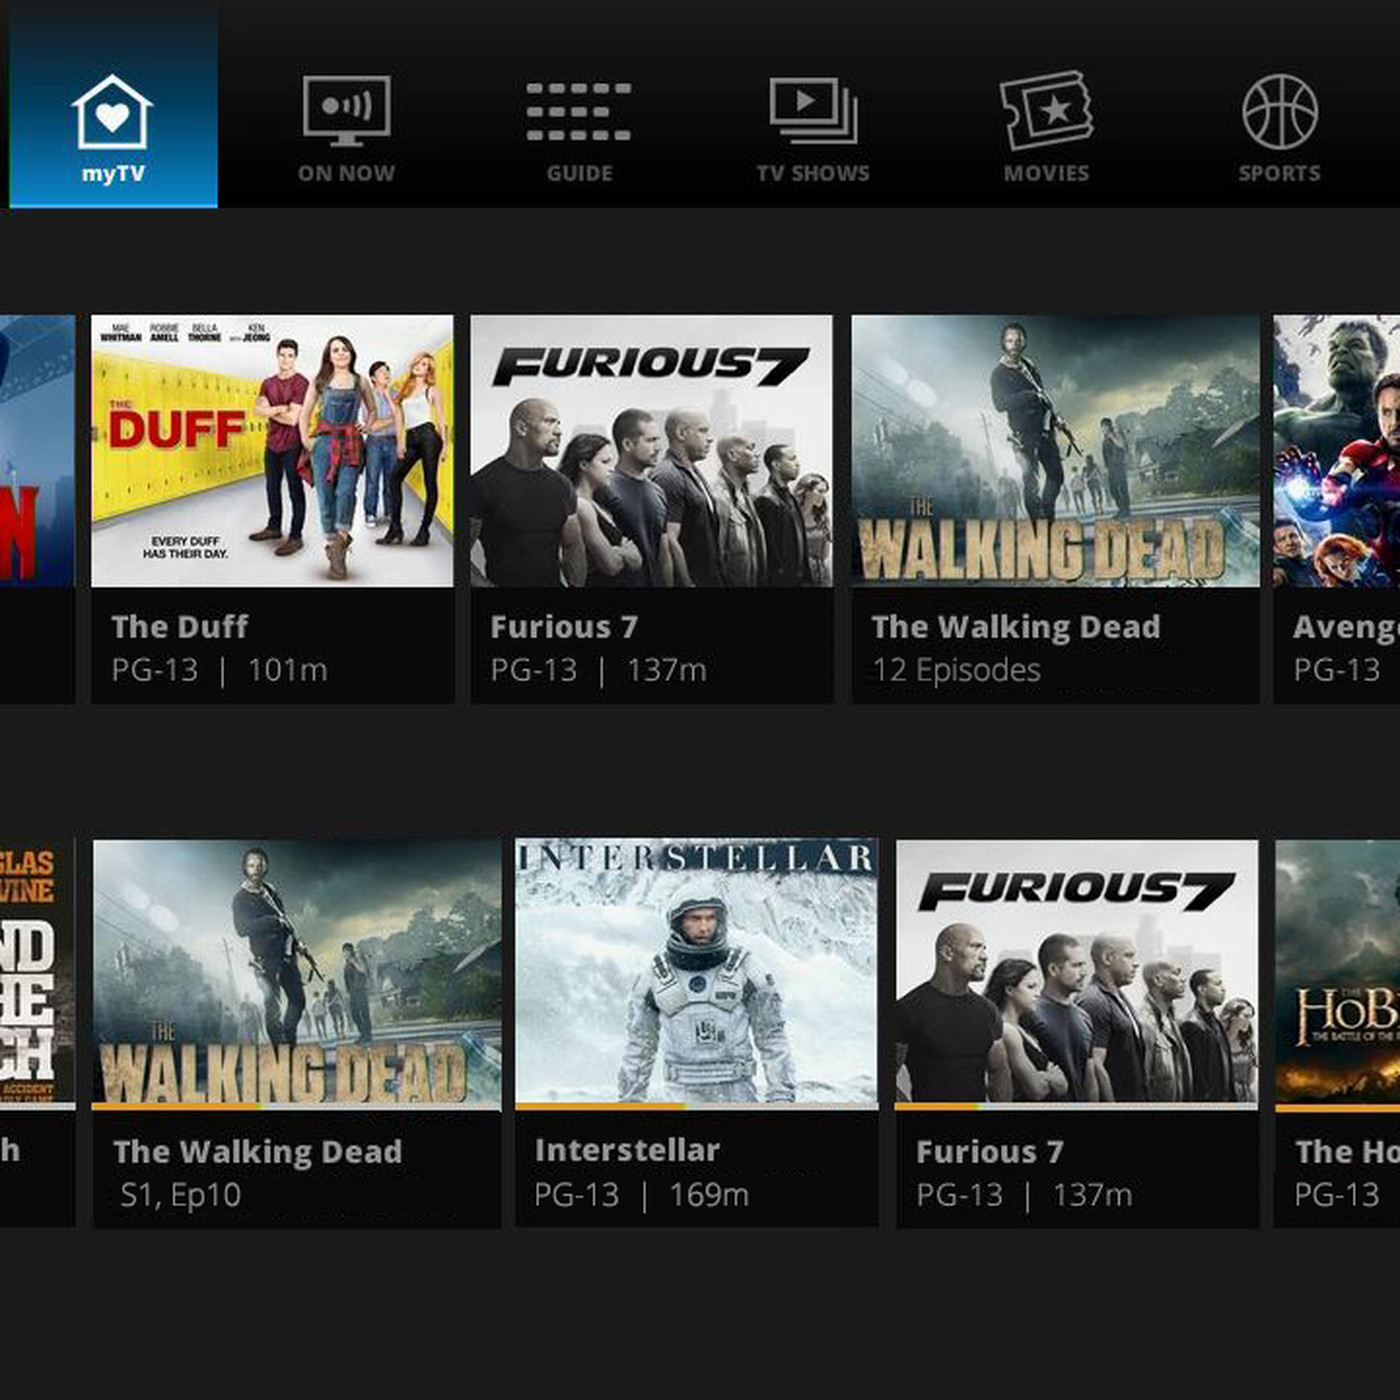 Sling TV gets a new look and adds ESPN3 to its channel lineup - The